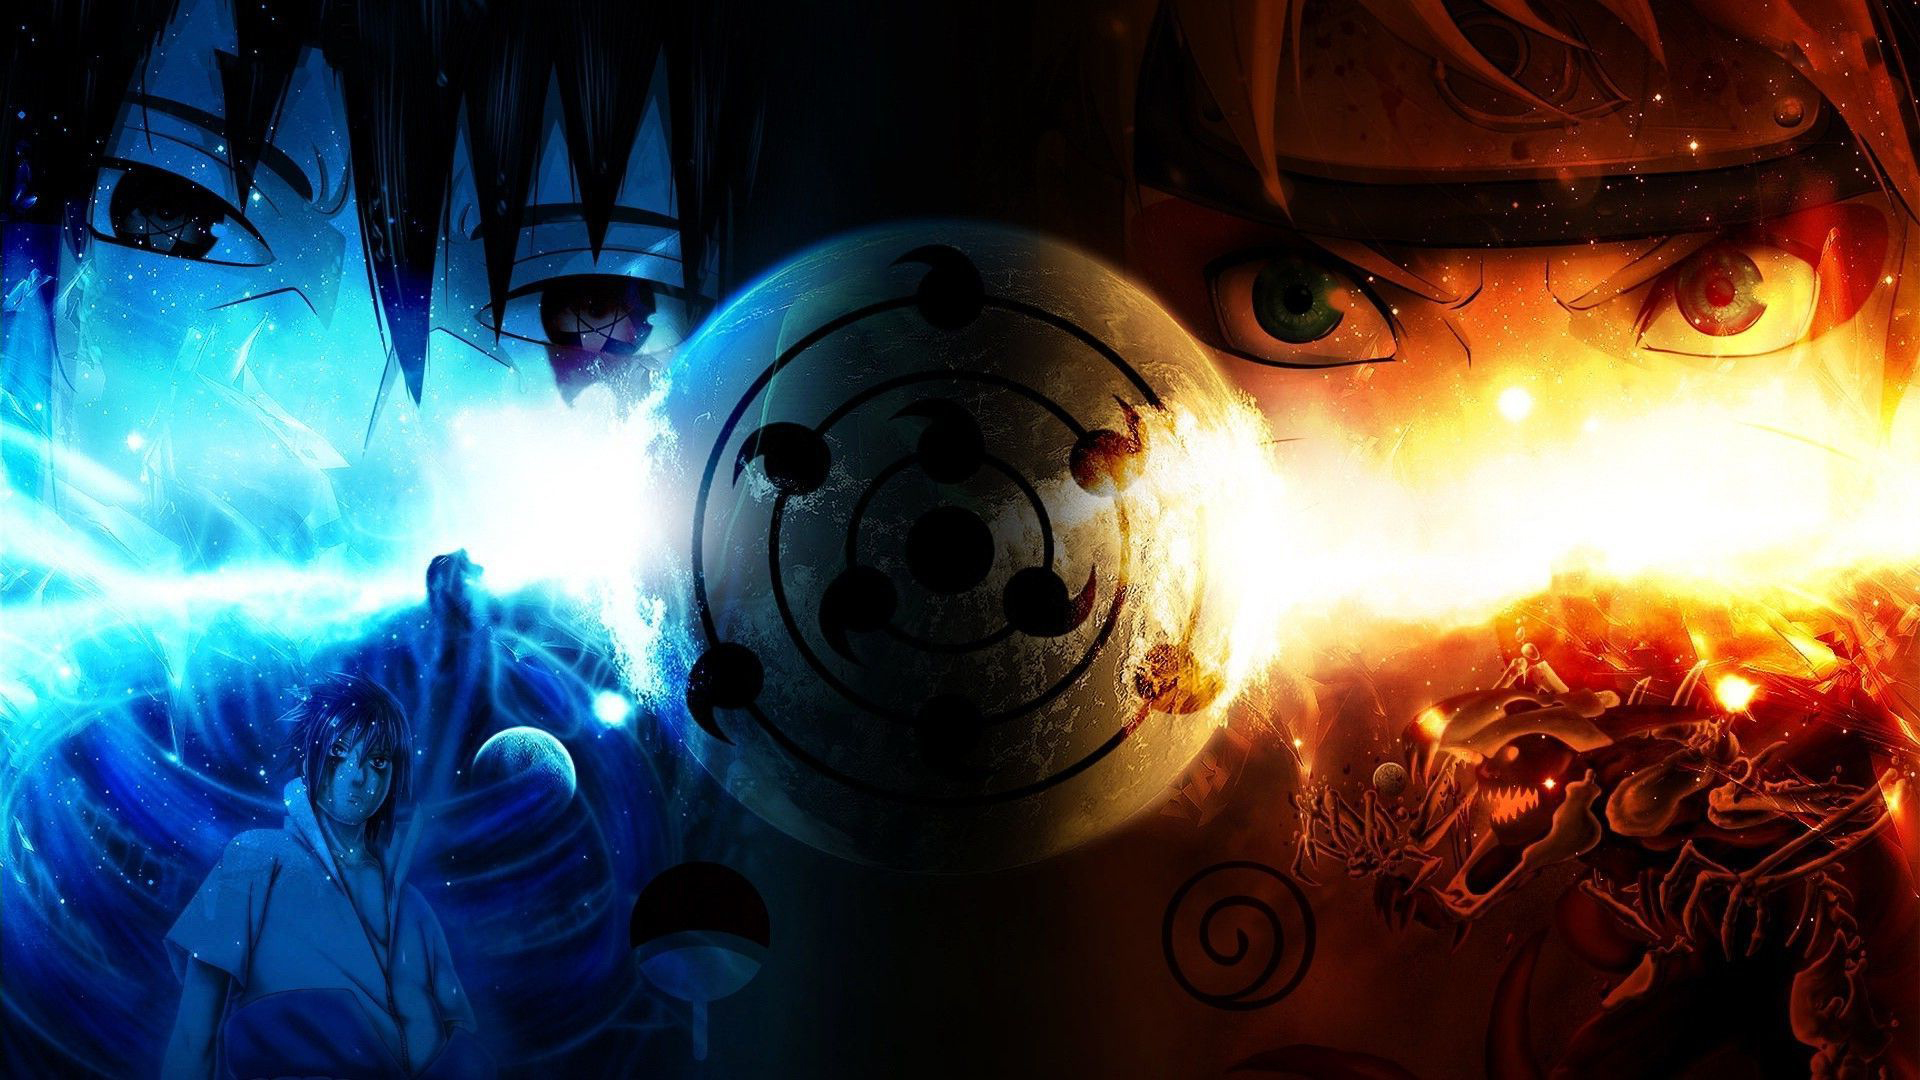 1920x1080 Naruto Backgrounds 1920x1080